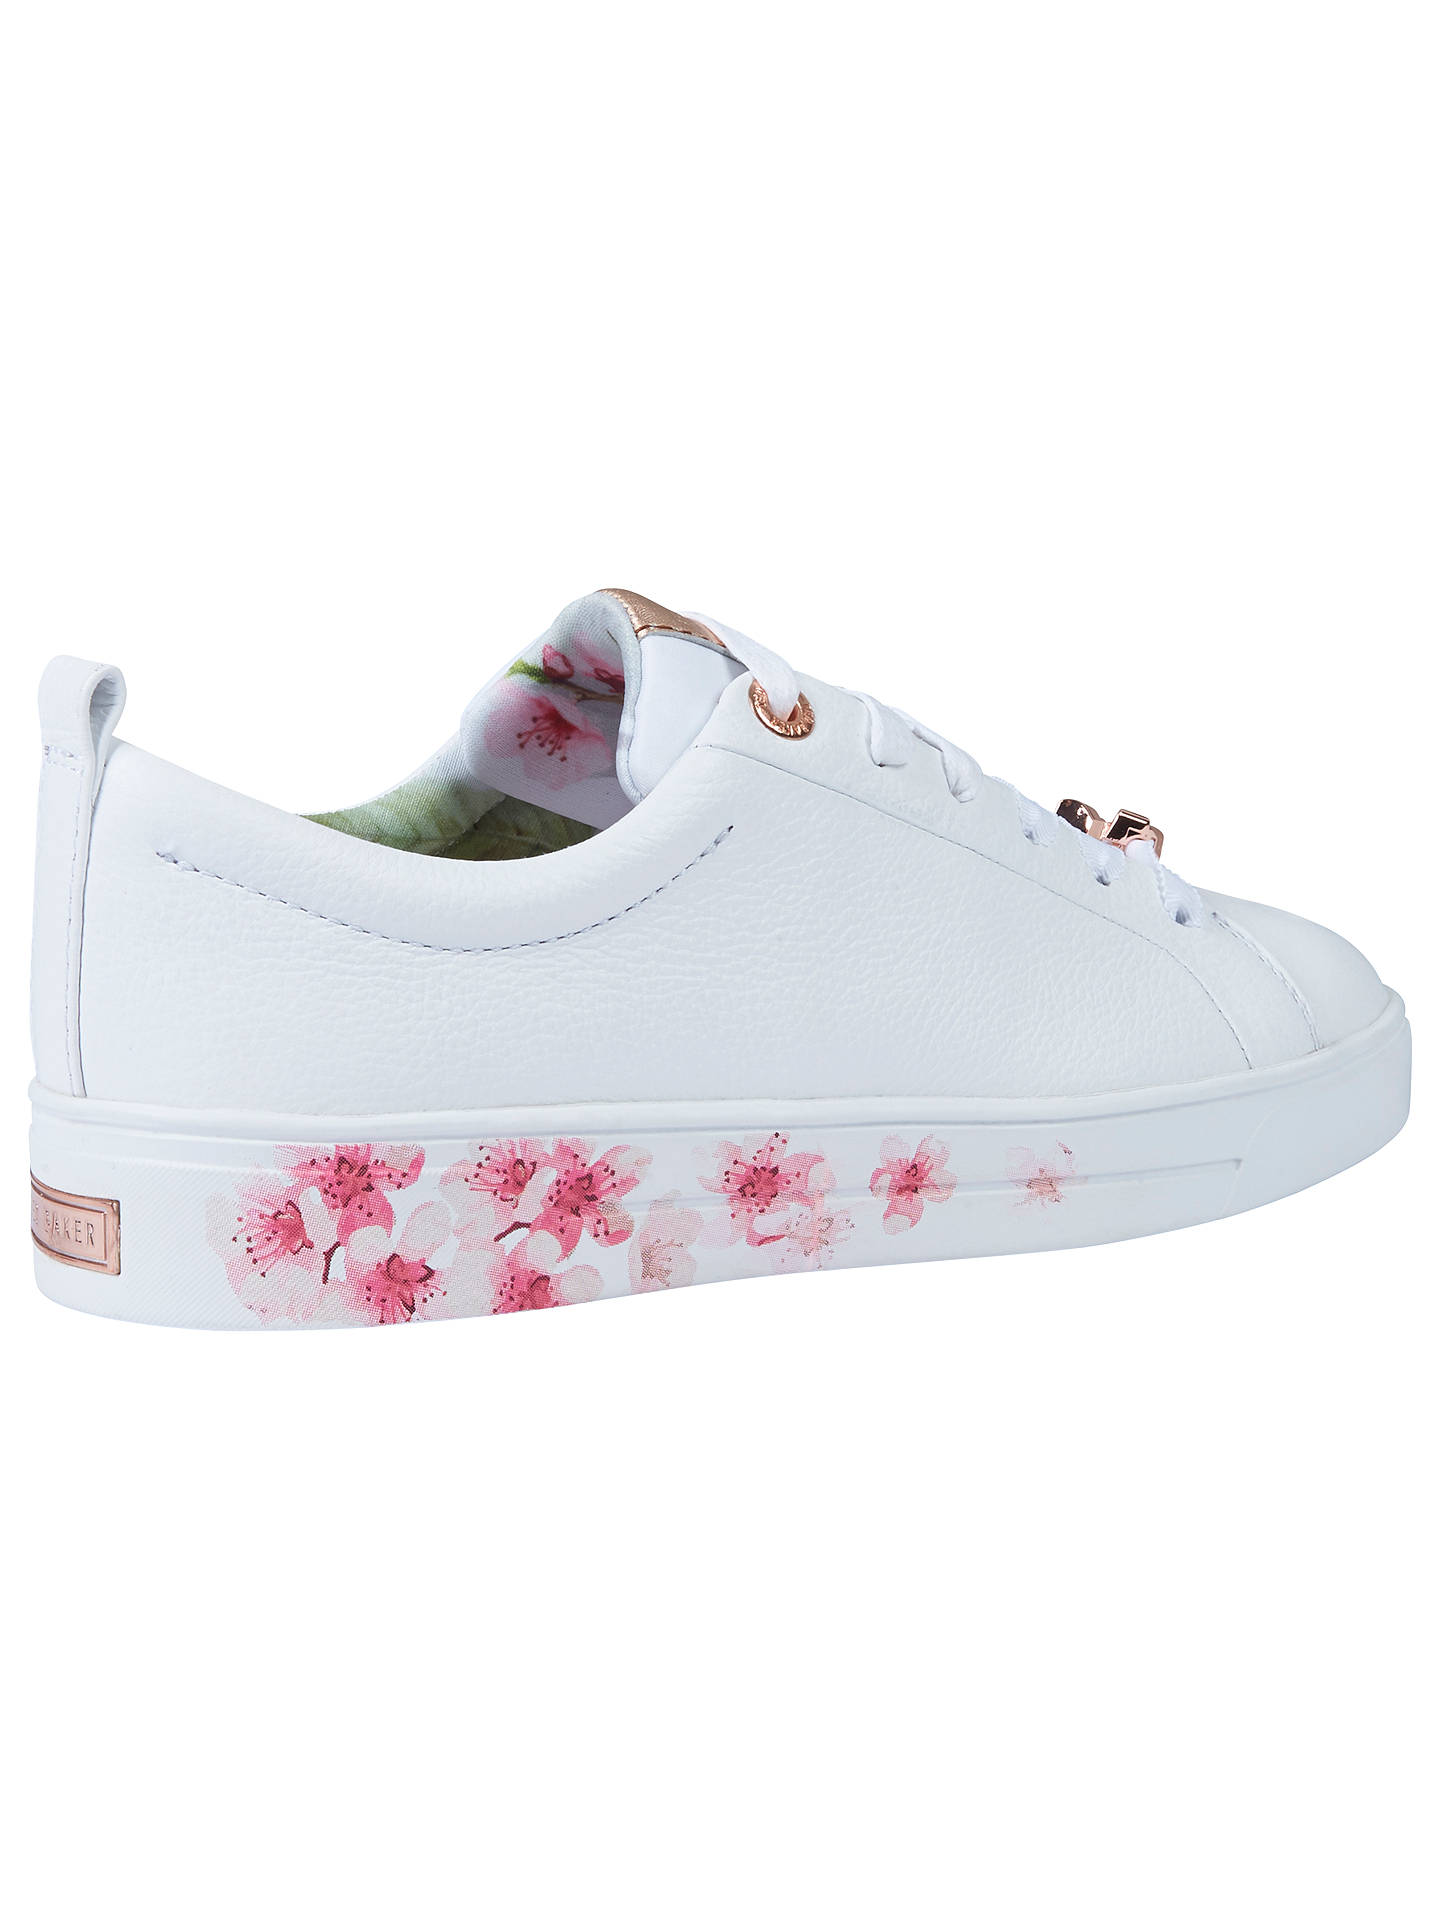 38a63090c2d800 Ted Baker Kelleip Low Top Trainers at John Lewis   Partners